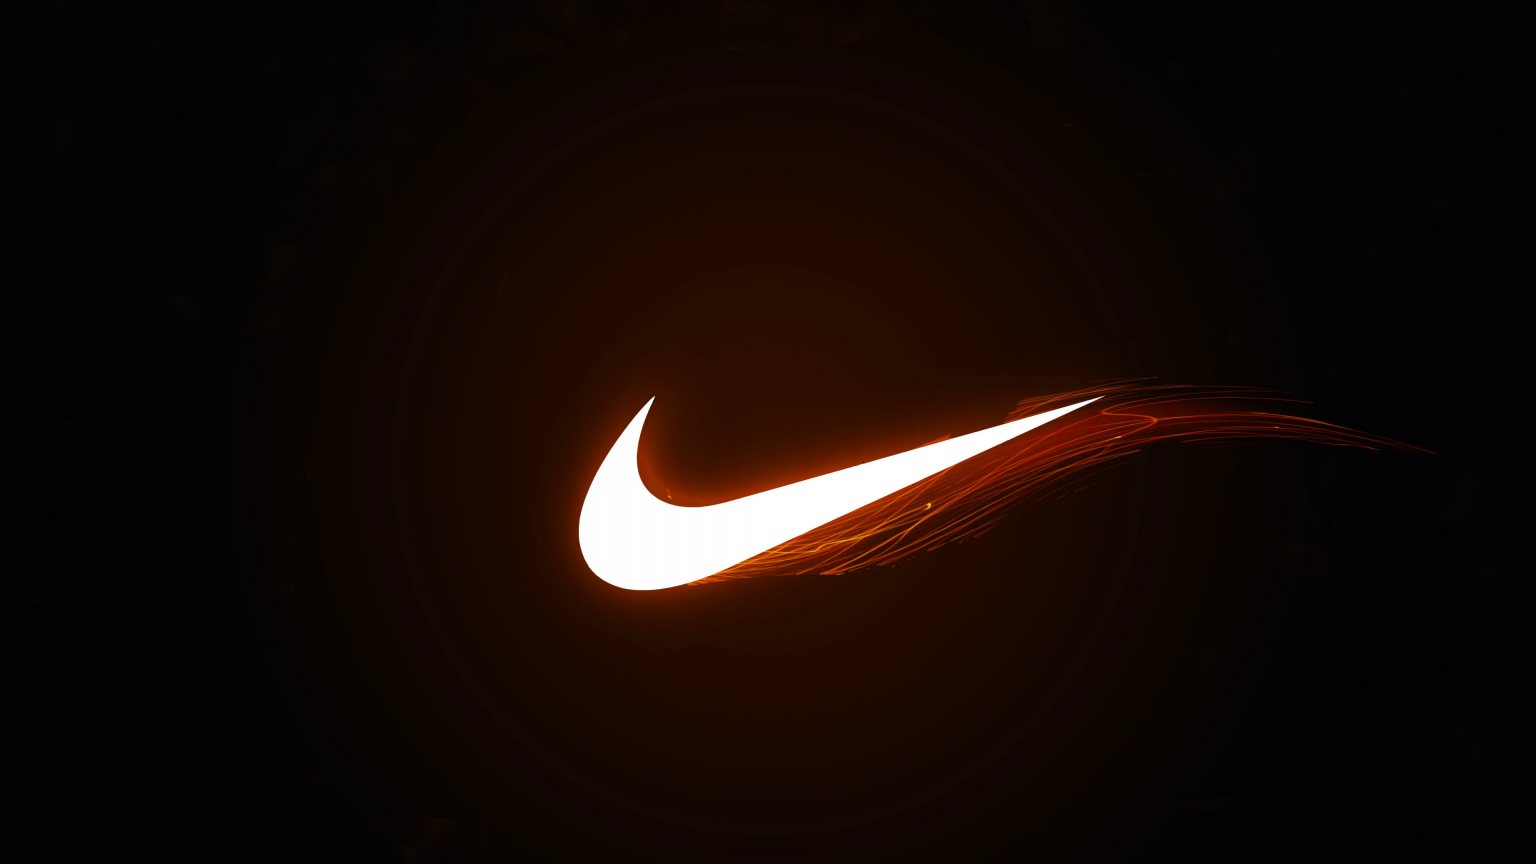 download Nike 4k Wallpaper Sports wallpapers [4096x2160] for 1536x864